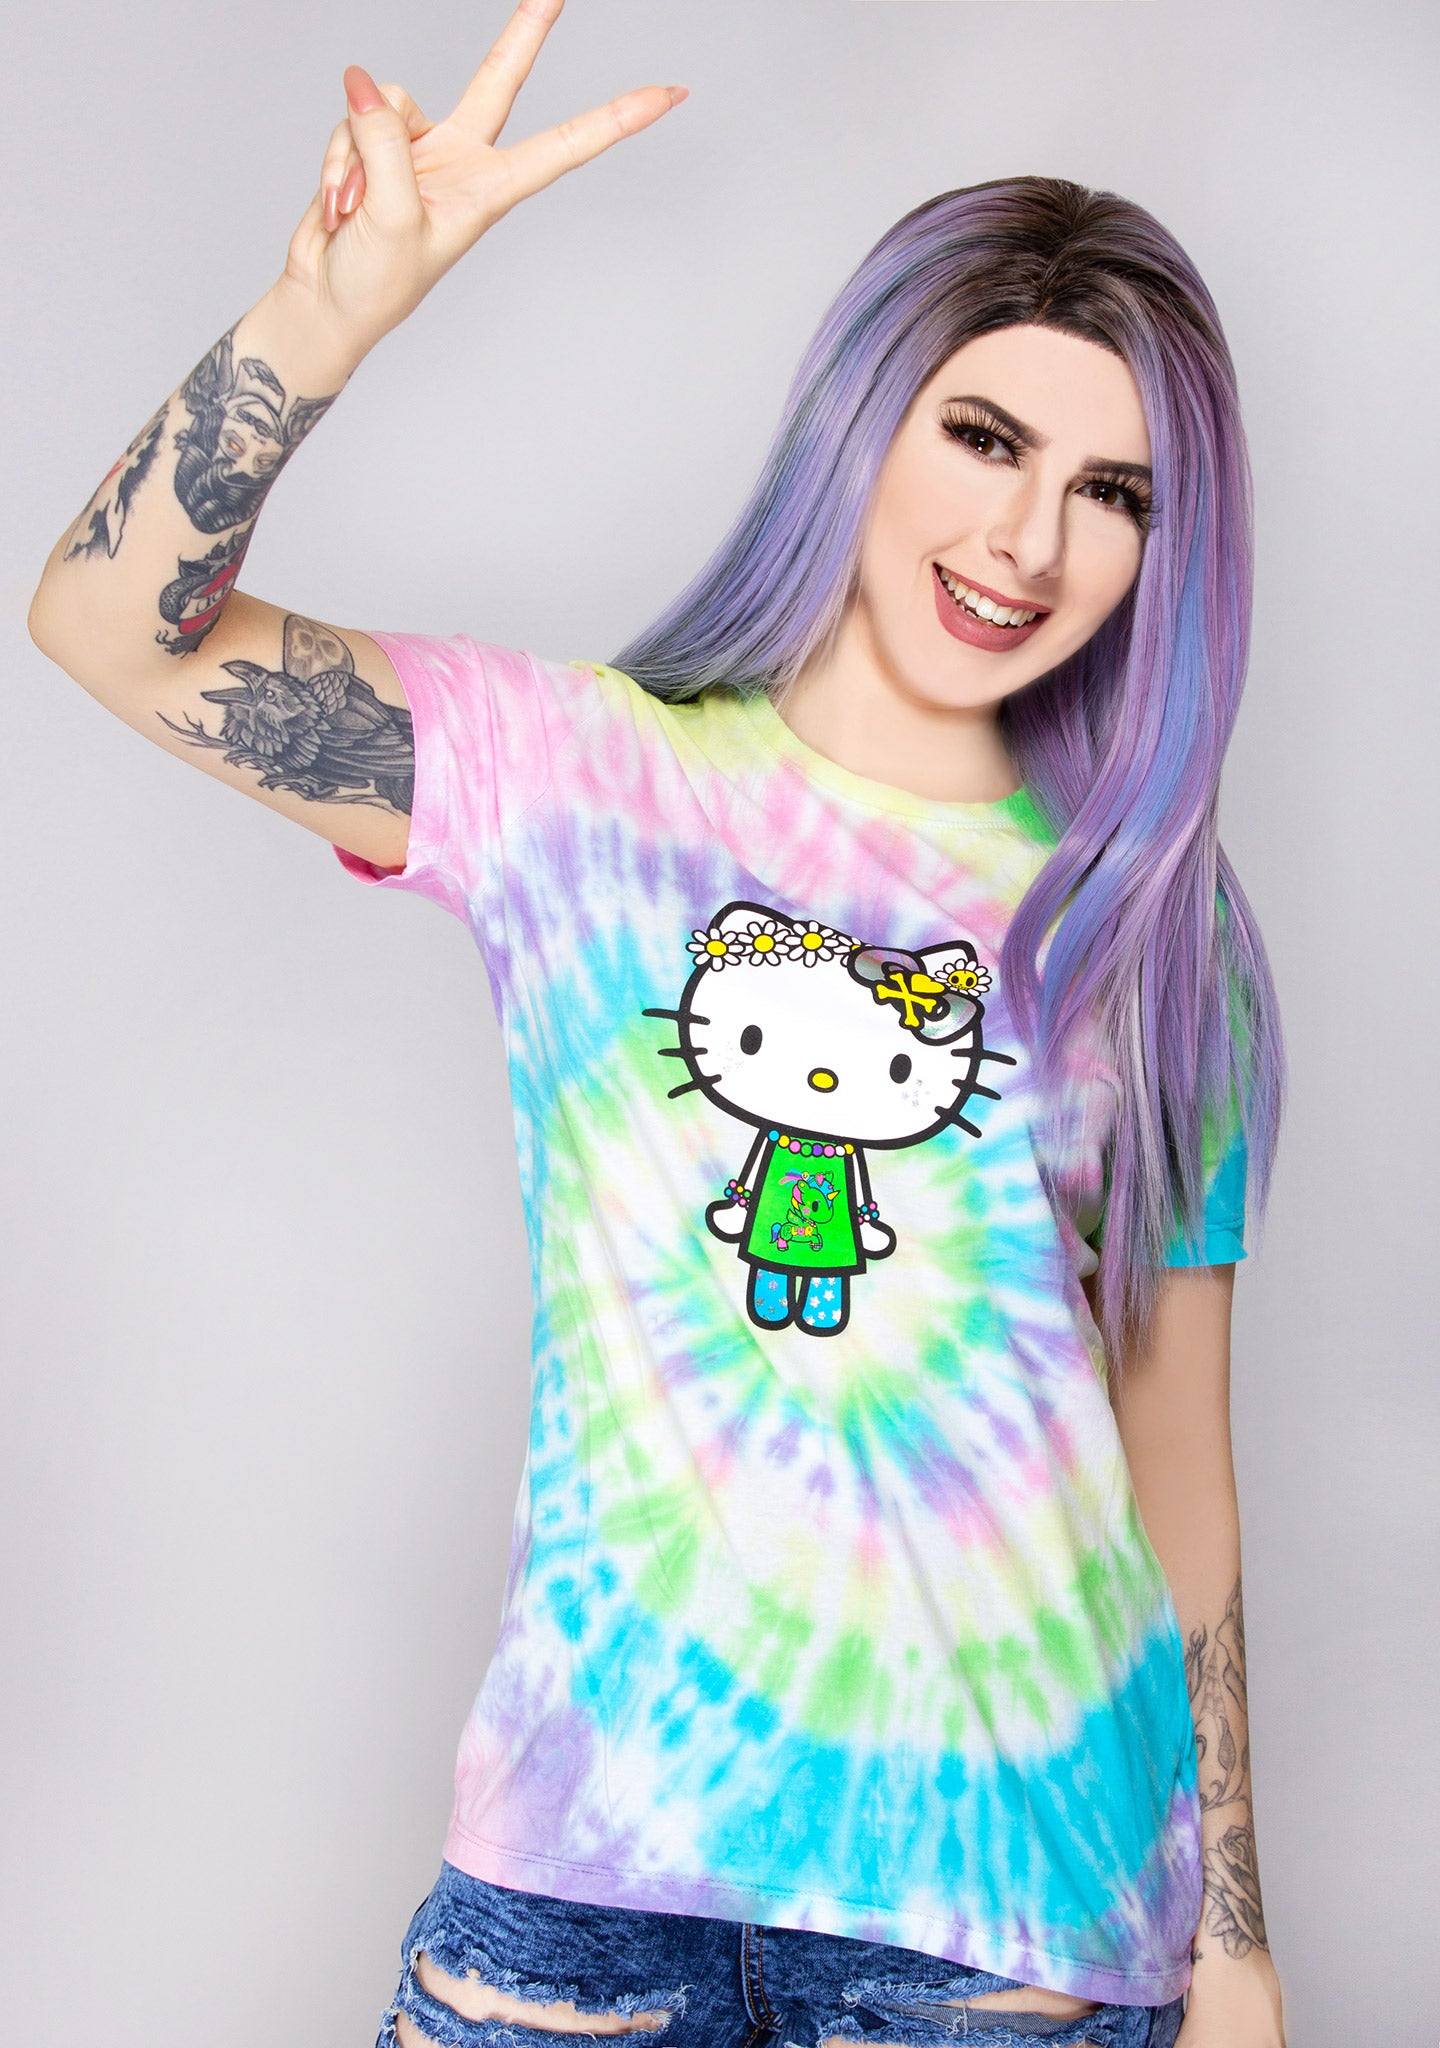 X Hello Kitty Far Out Kitty Tie Dye Tee